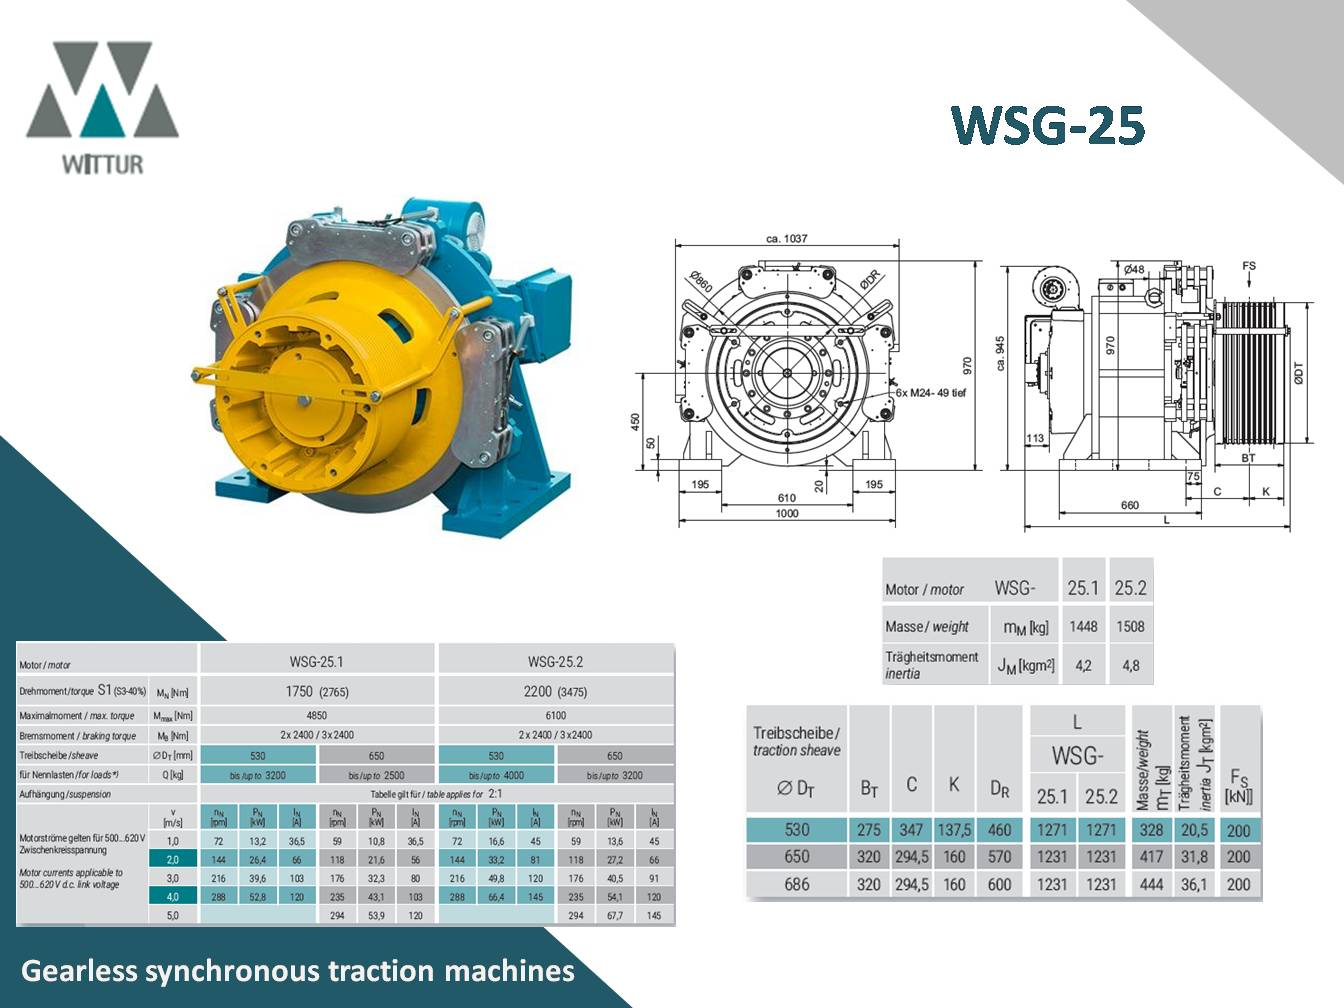 http://aasansor.ir/images/product/3_type_of_parts/1_motor/2_gearboxless/1_germany/witur/Slide3-1.jpg